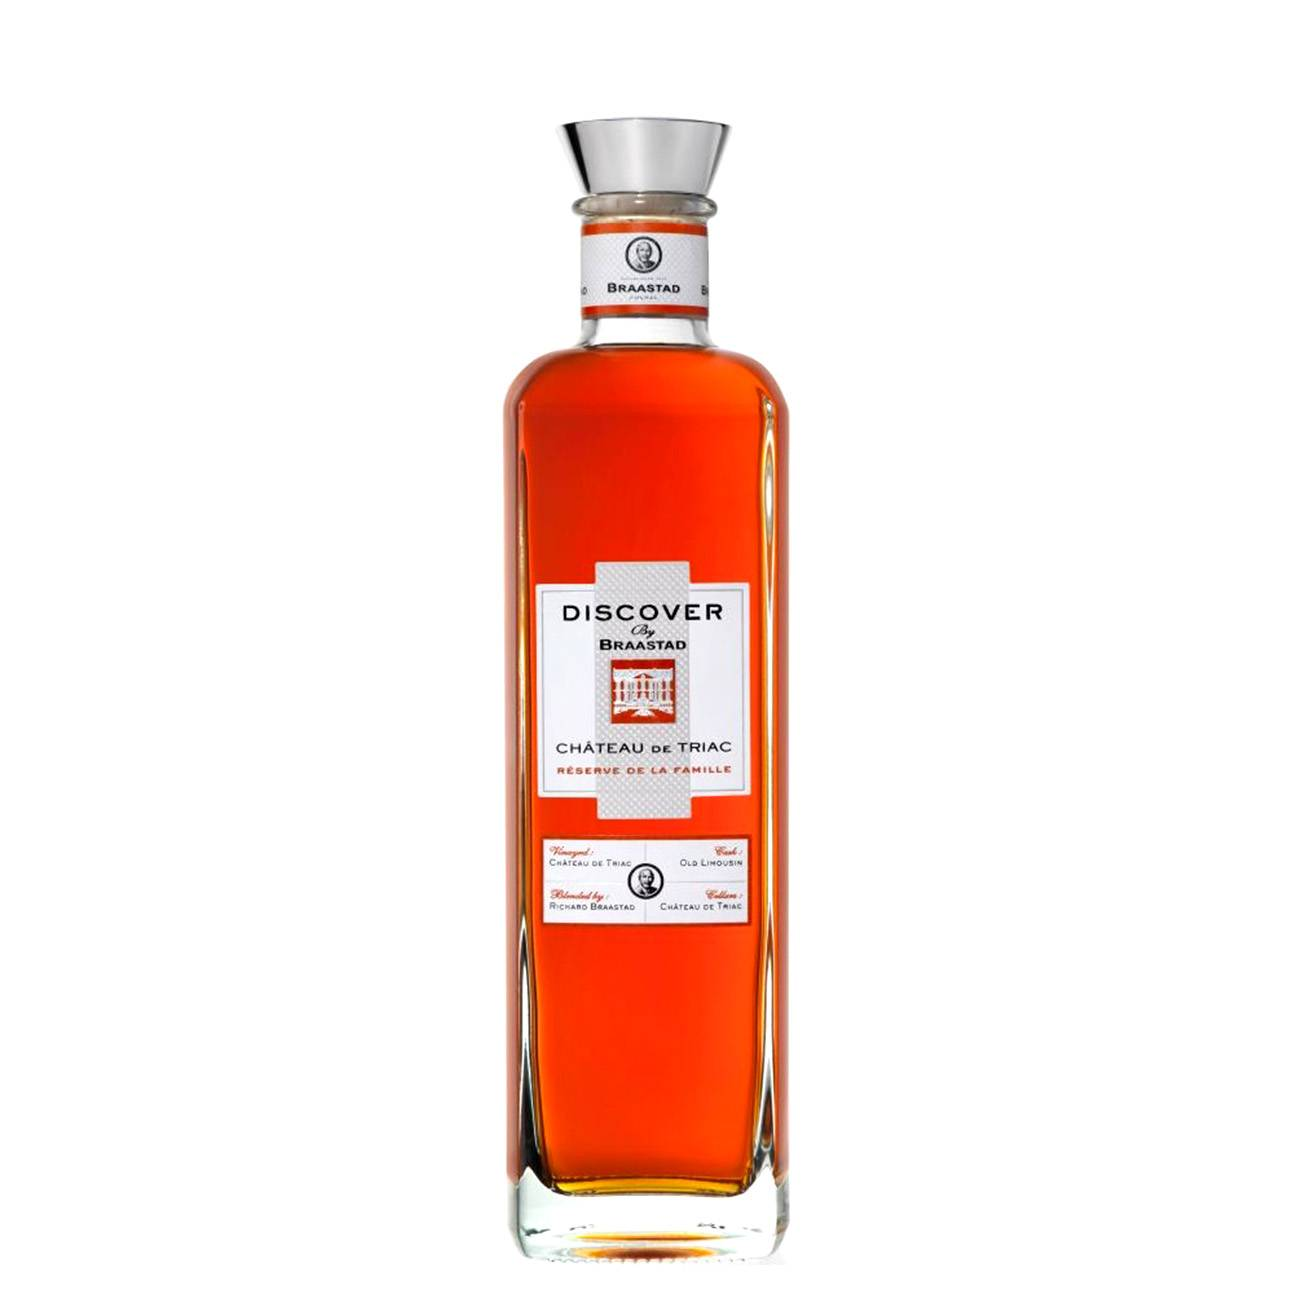 Coniac XO, CHATEAU DE TRIAC COGNAC 700 ML, Braastad